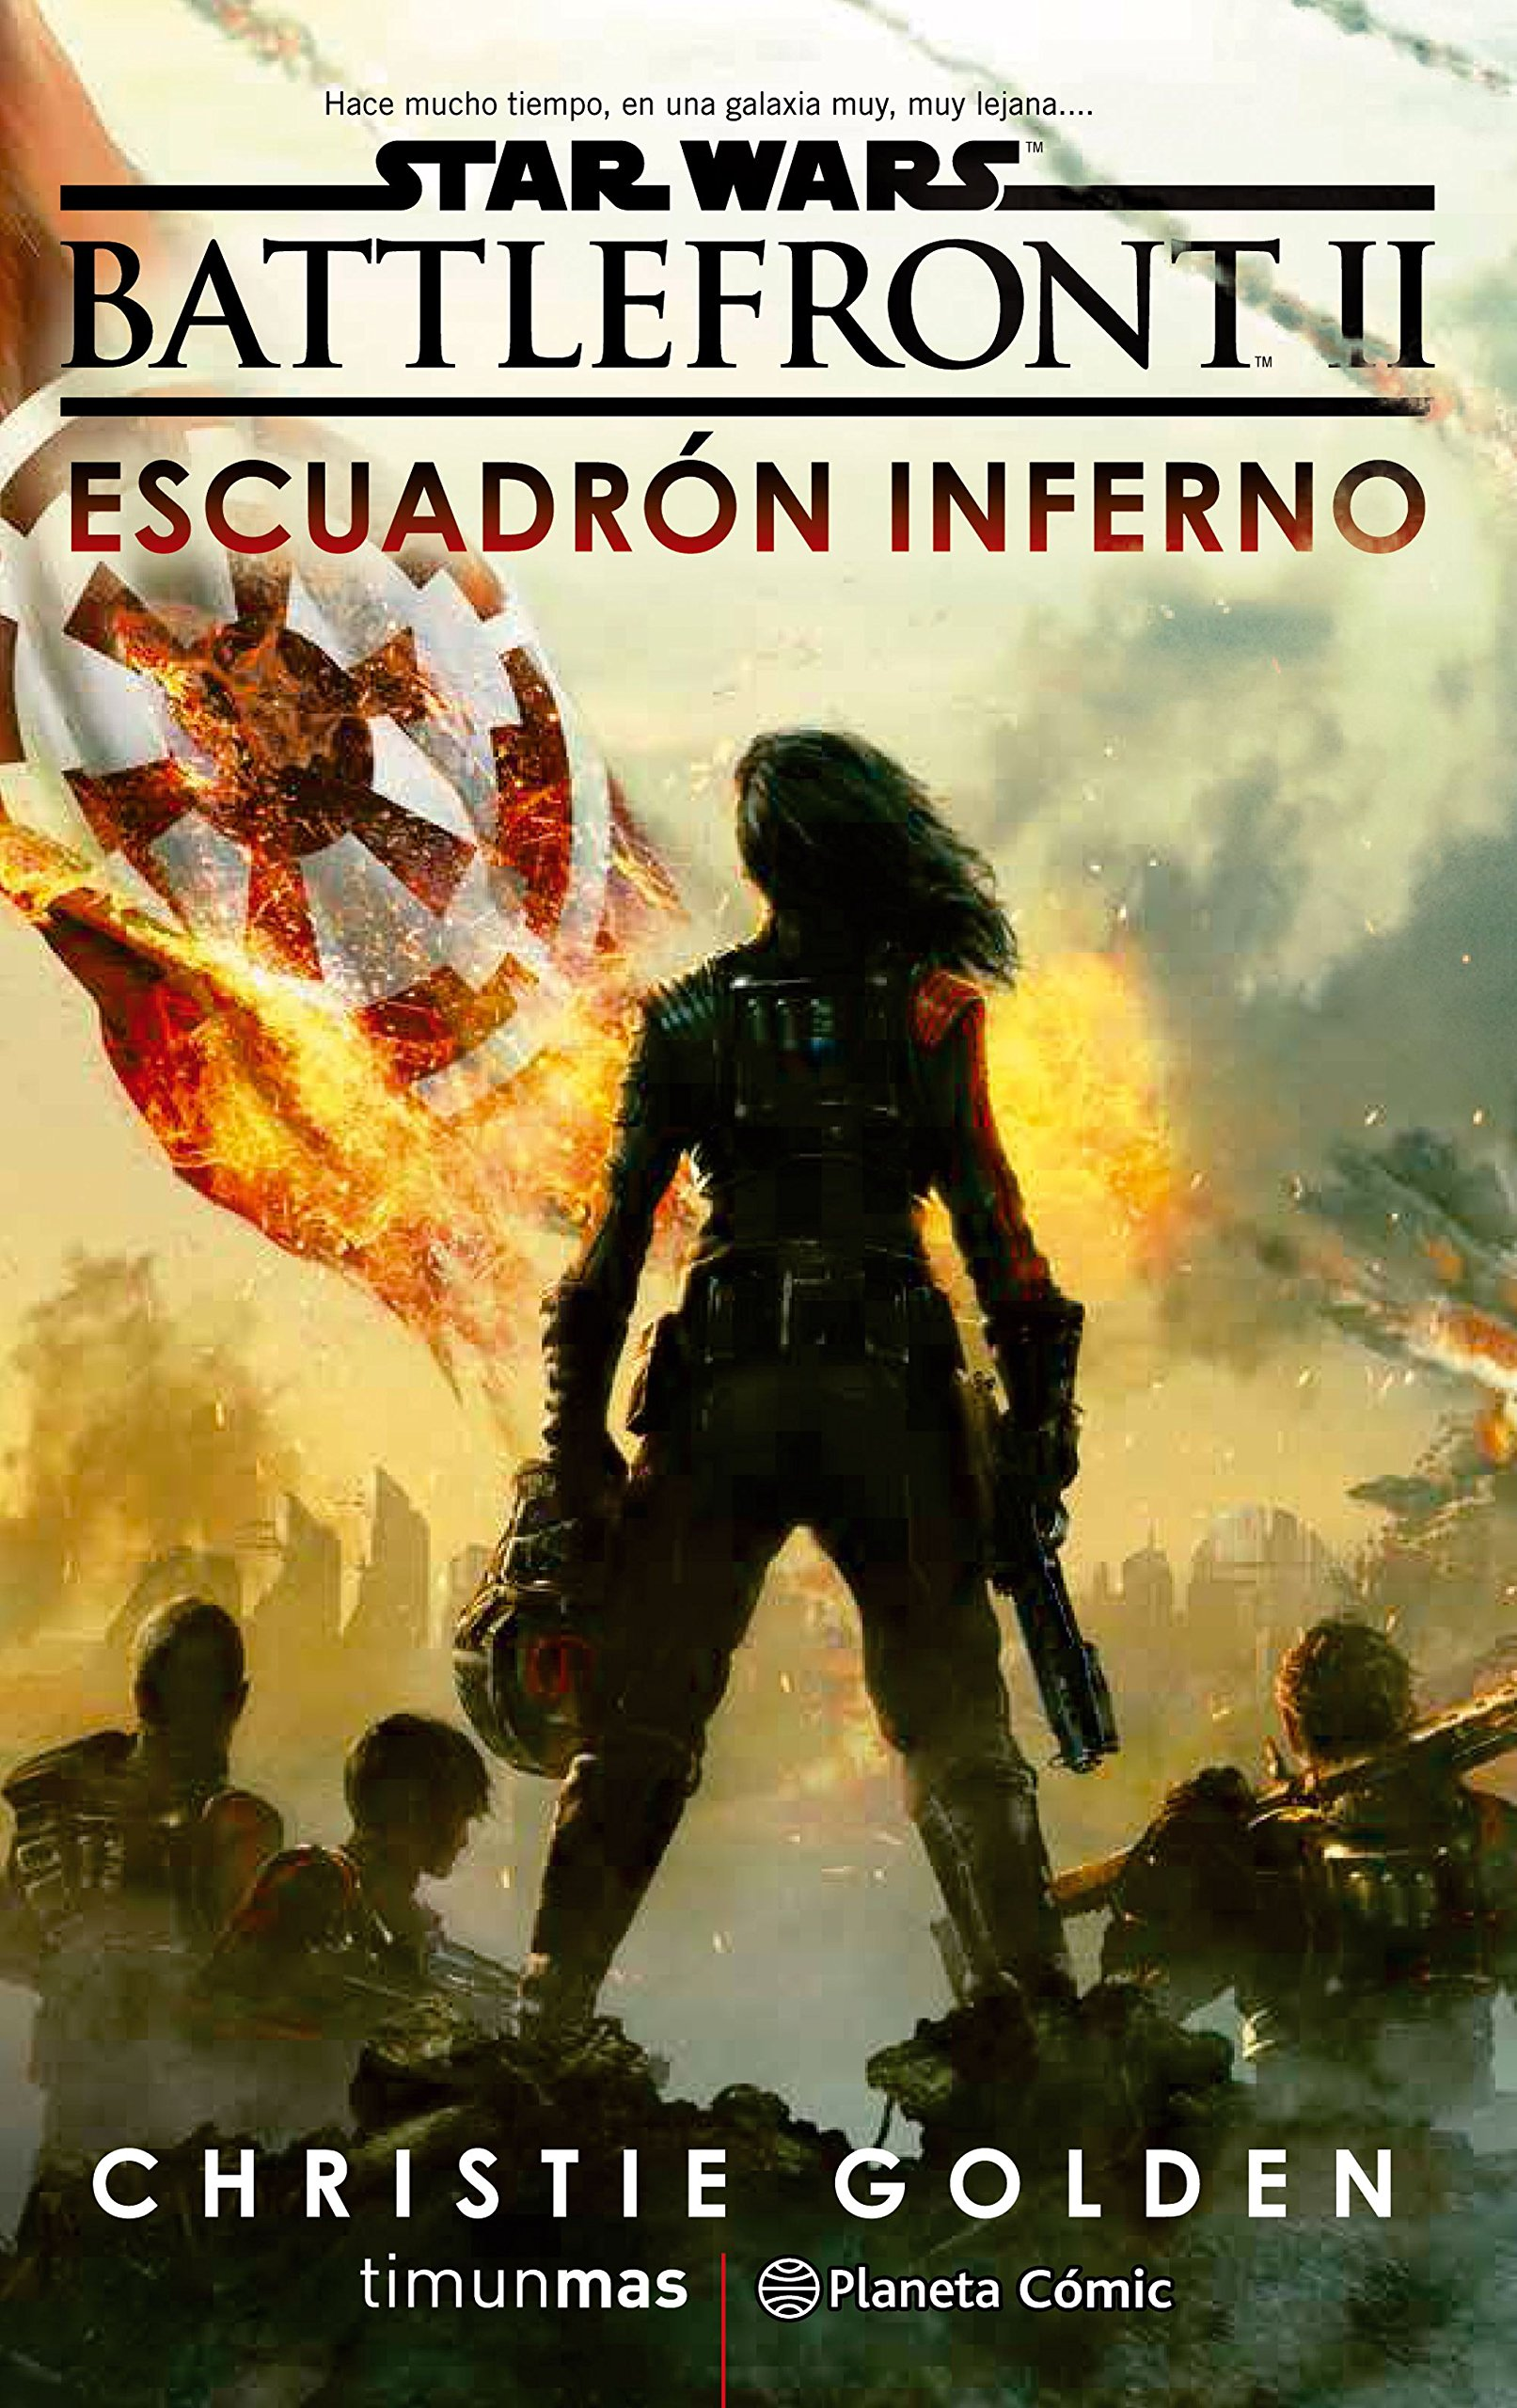 Star Wars Episodio VIII Battlefront Escuadrón Inferno novela Star Wars: Novelas: Amazon.es: Golden, Christie, Agut Iglesias, Albert: Libros